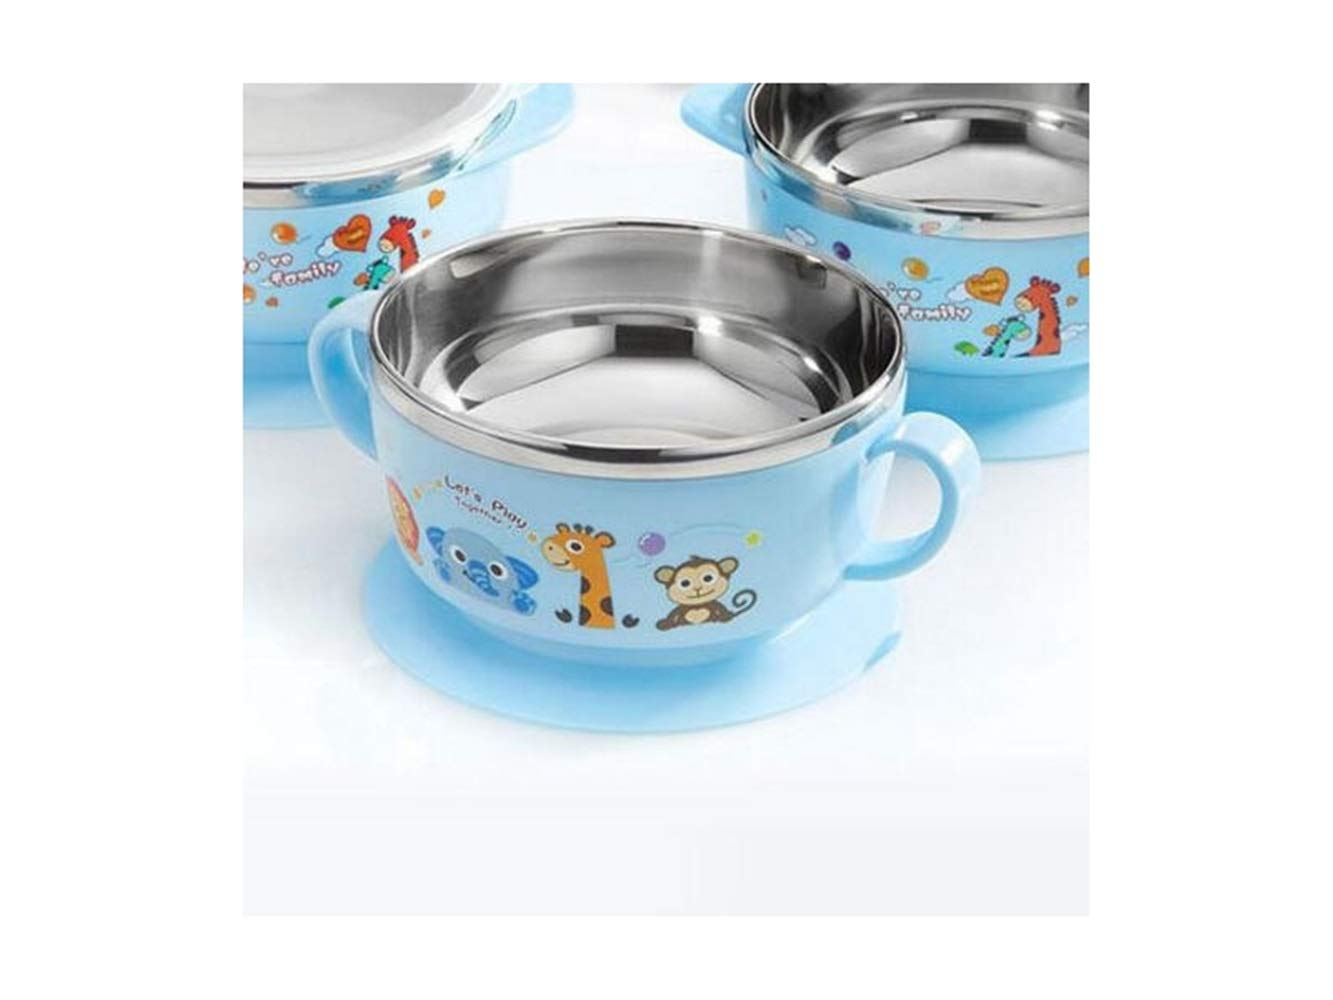 Yuchoi Contemporary Animal Pattern Baby Feeding Bowl Anti-Scald Stainless Steel Children Dish Insulation Bowl with Lid and Double Handles for Kids Students(Blue) by Yuchoi (Image #3)